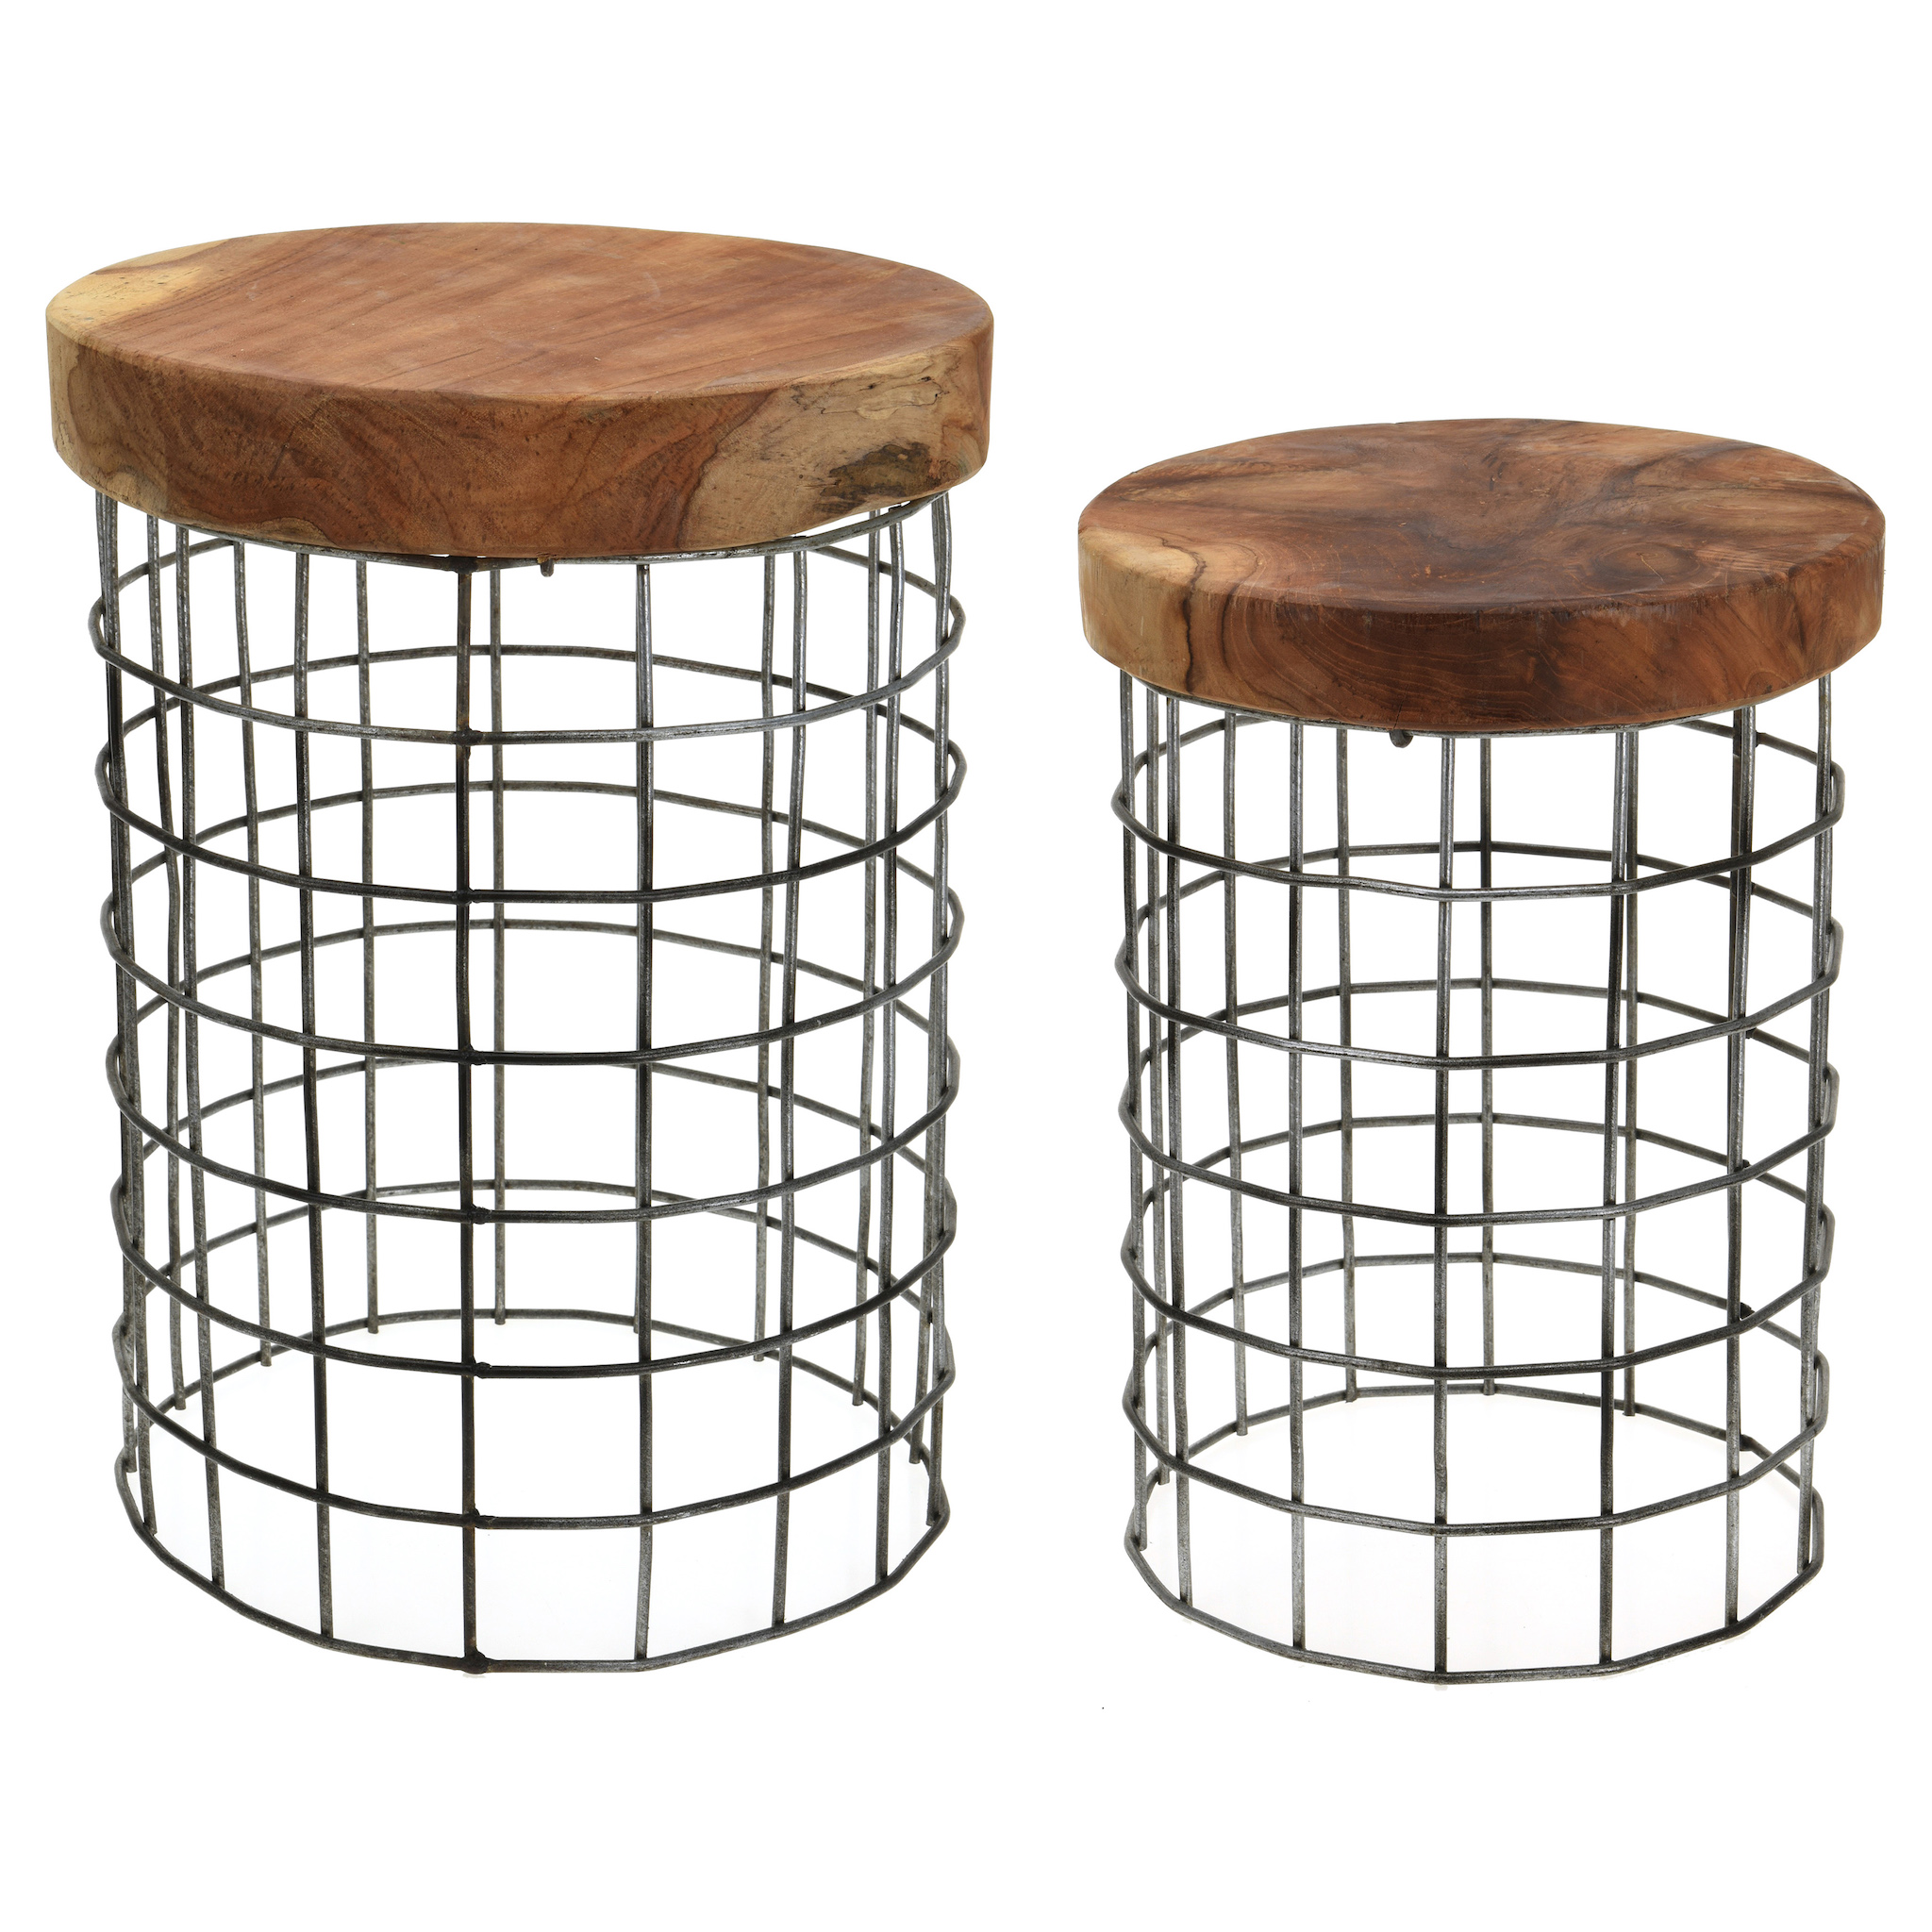 Set of 2 Round Teakwood stools